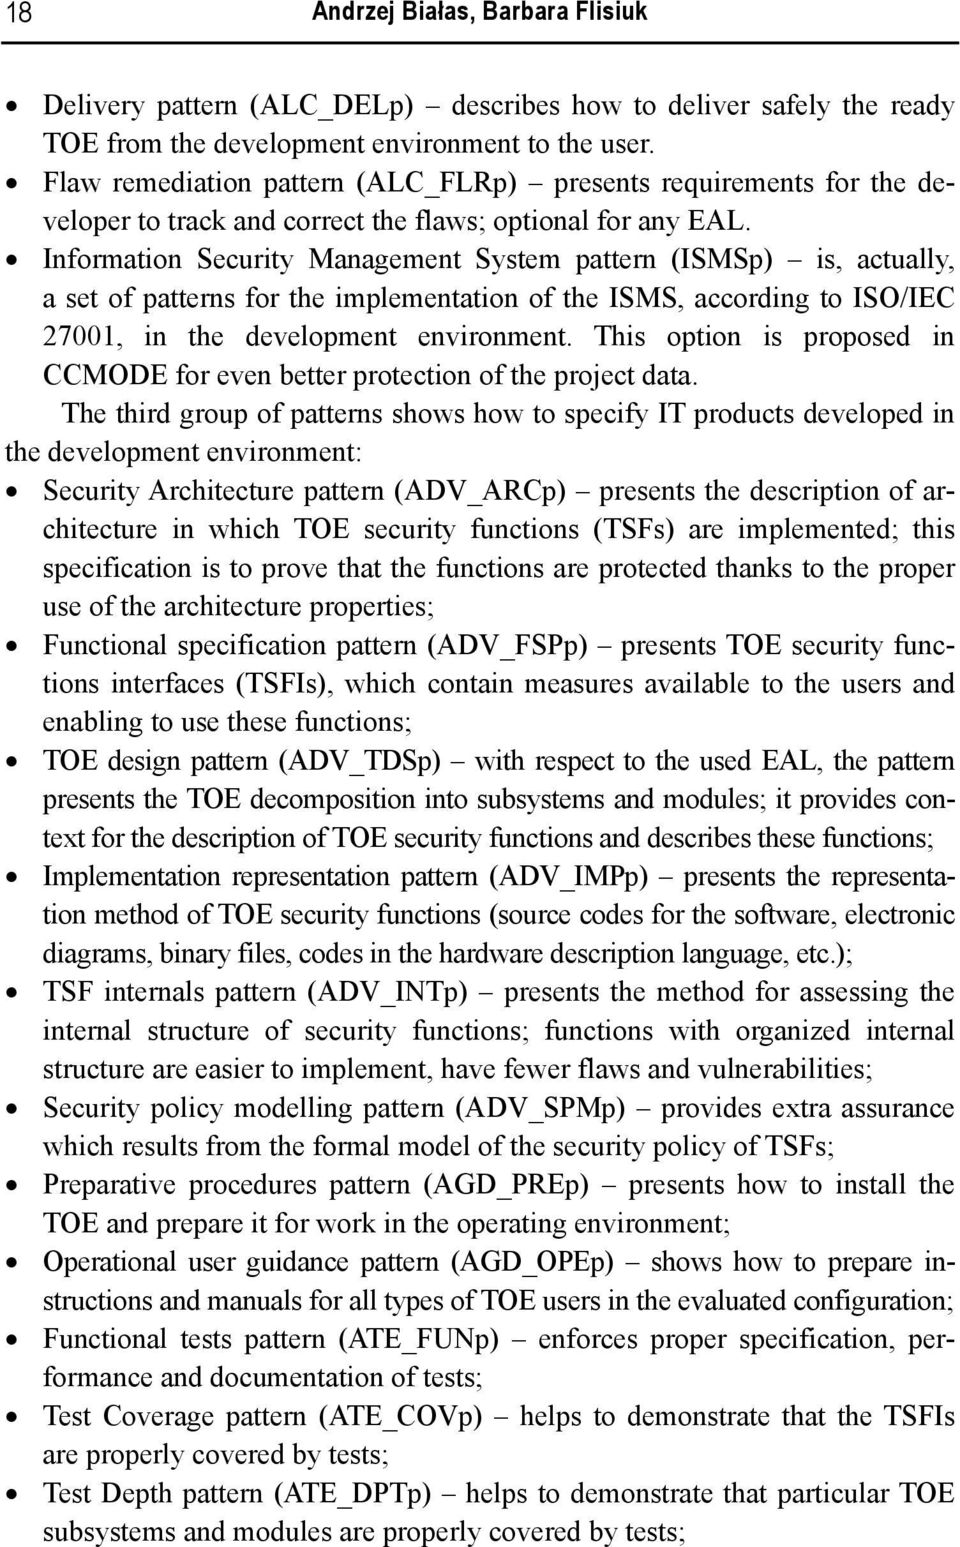 Information Security Management System pattern (ISMSp) is, actually, a set of patterns for the implementation of the ISMS, according to ISO/IEC 27001, in the development environment.